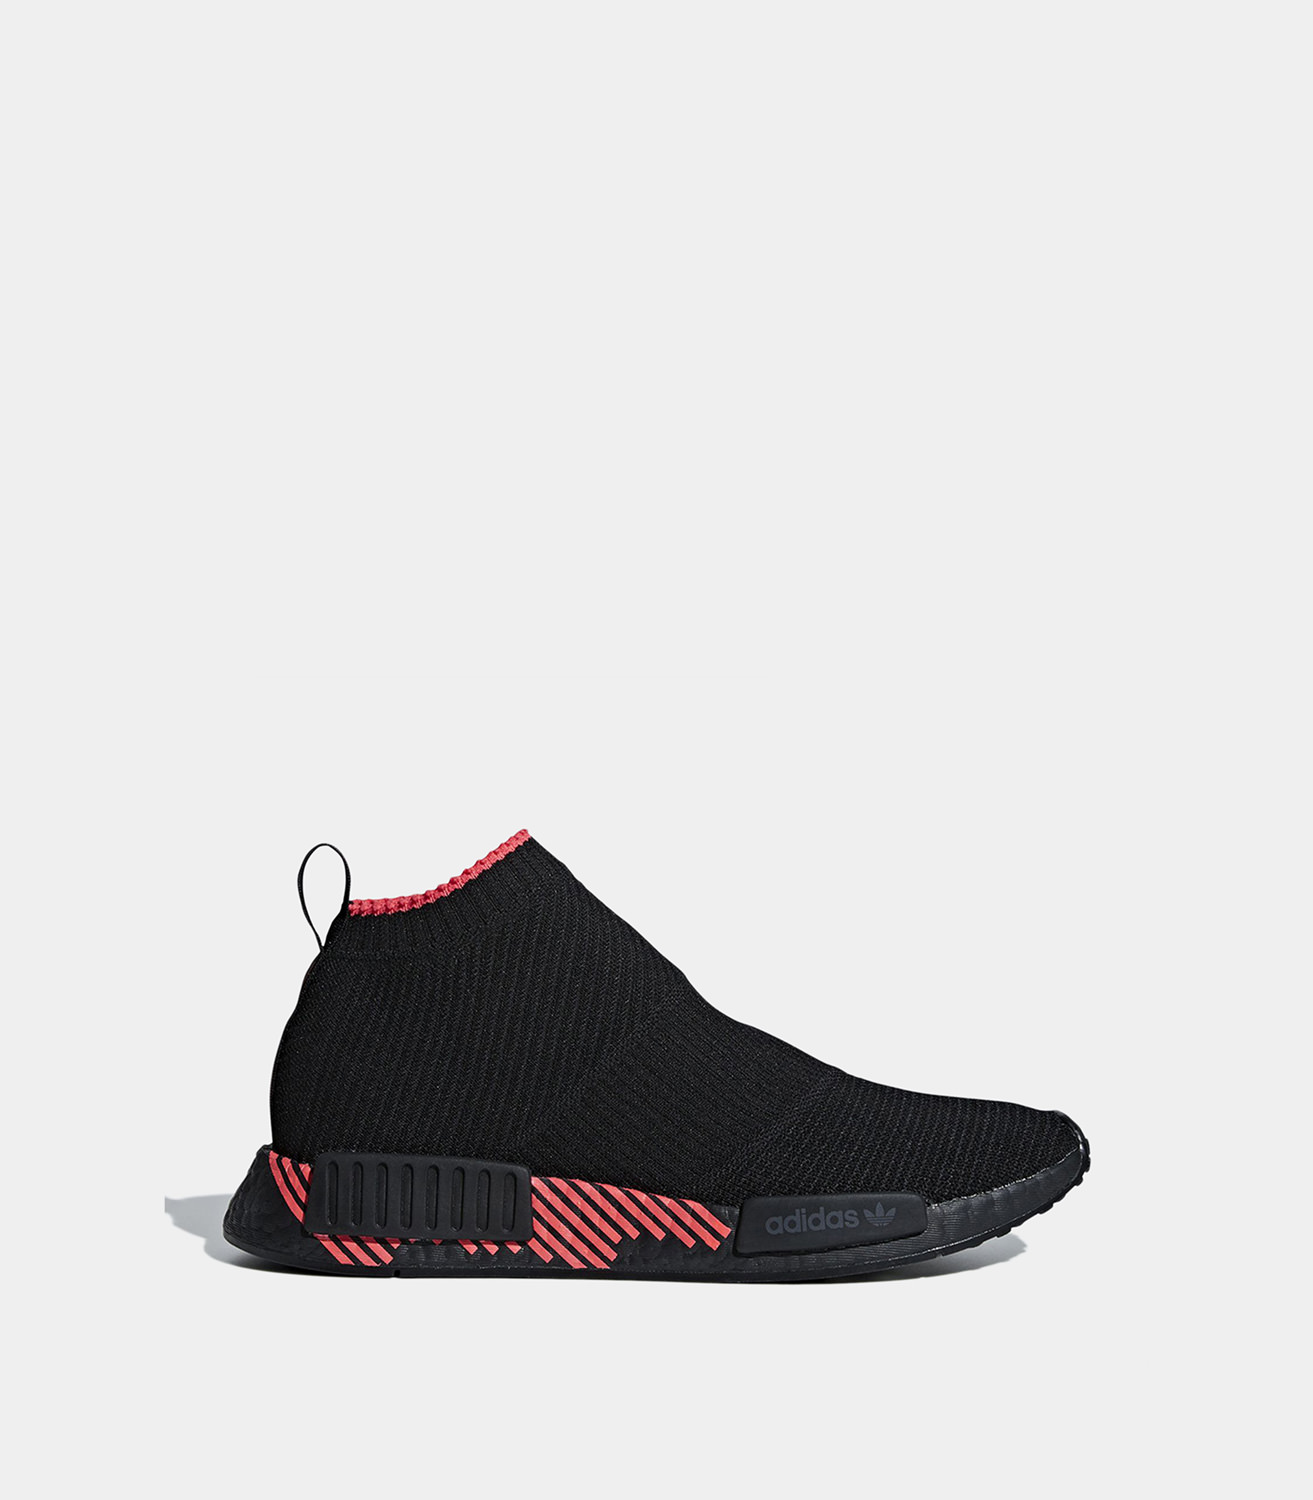 dd3c67a7fdb2c ADIDAS ORIGINALS NMD CS1 PK SNEAKERS COLOR BLACK